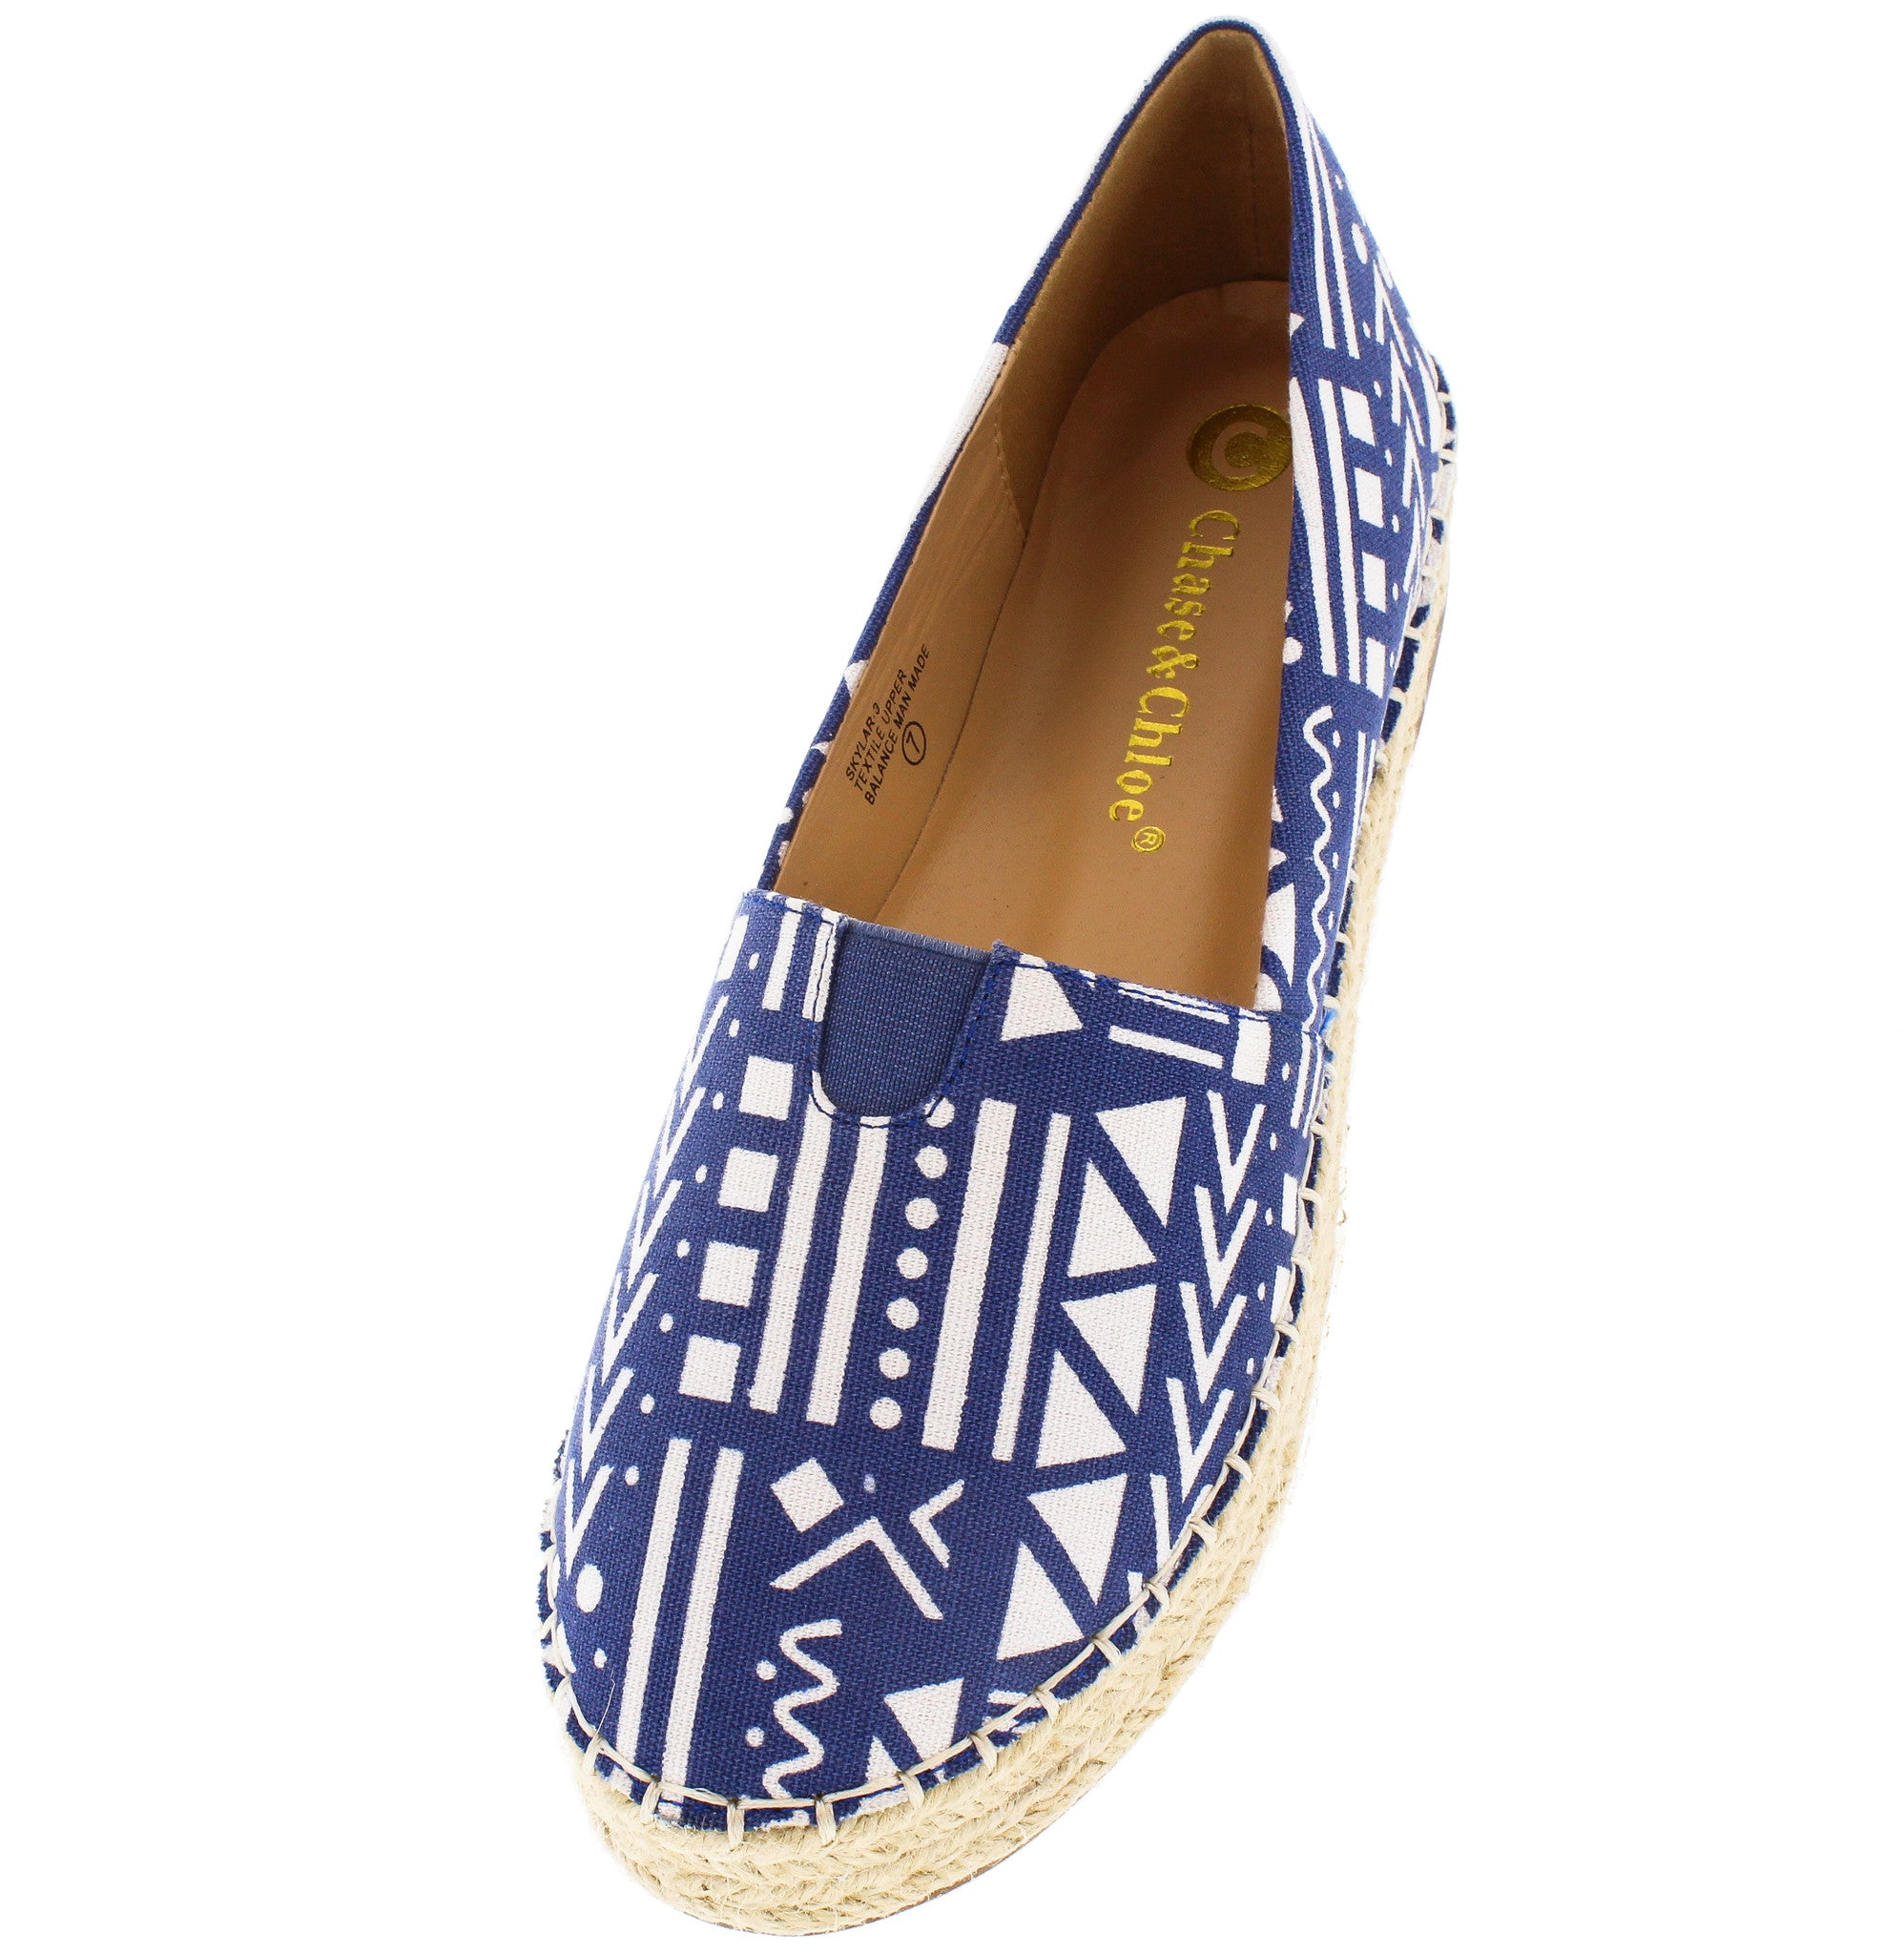 Get the best deals on tribal print shoes and save up to 70% off at Poshmark now! Whatever you're shopping for, we've got it.